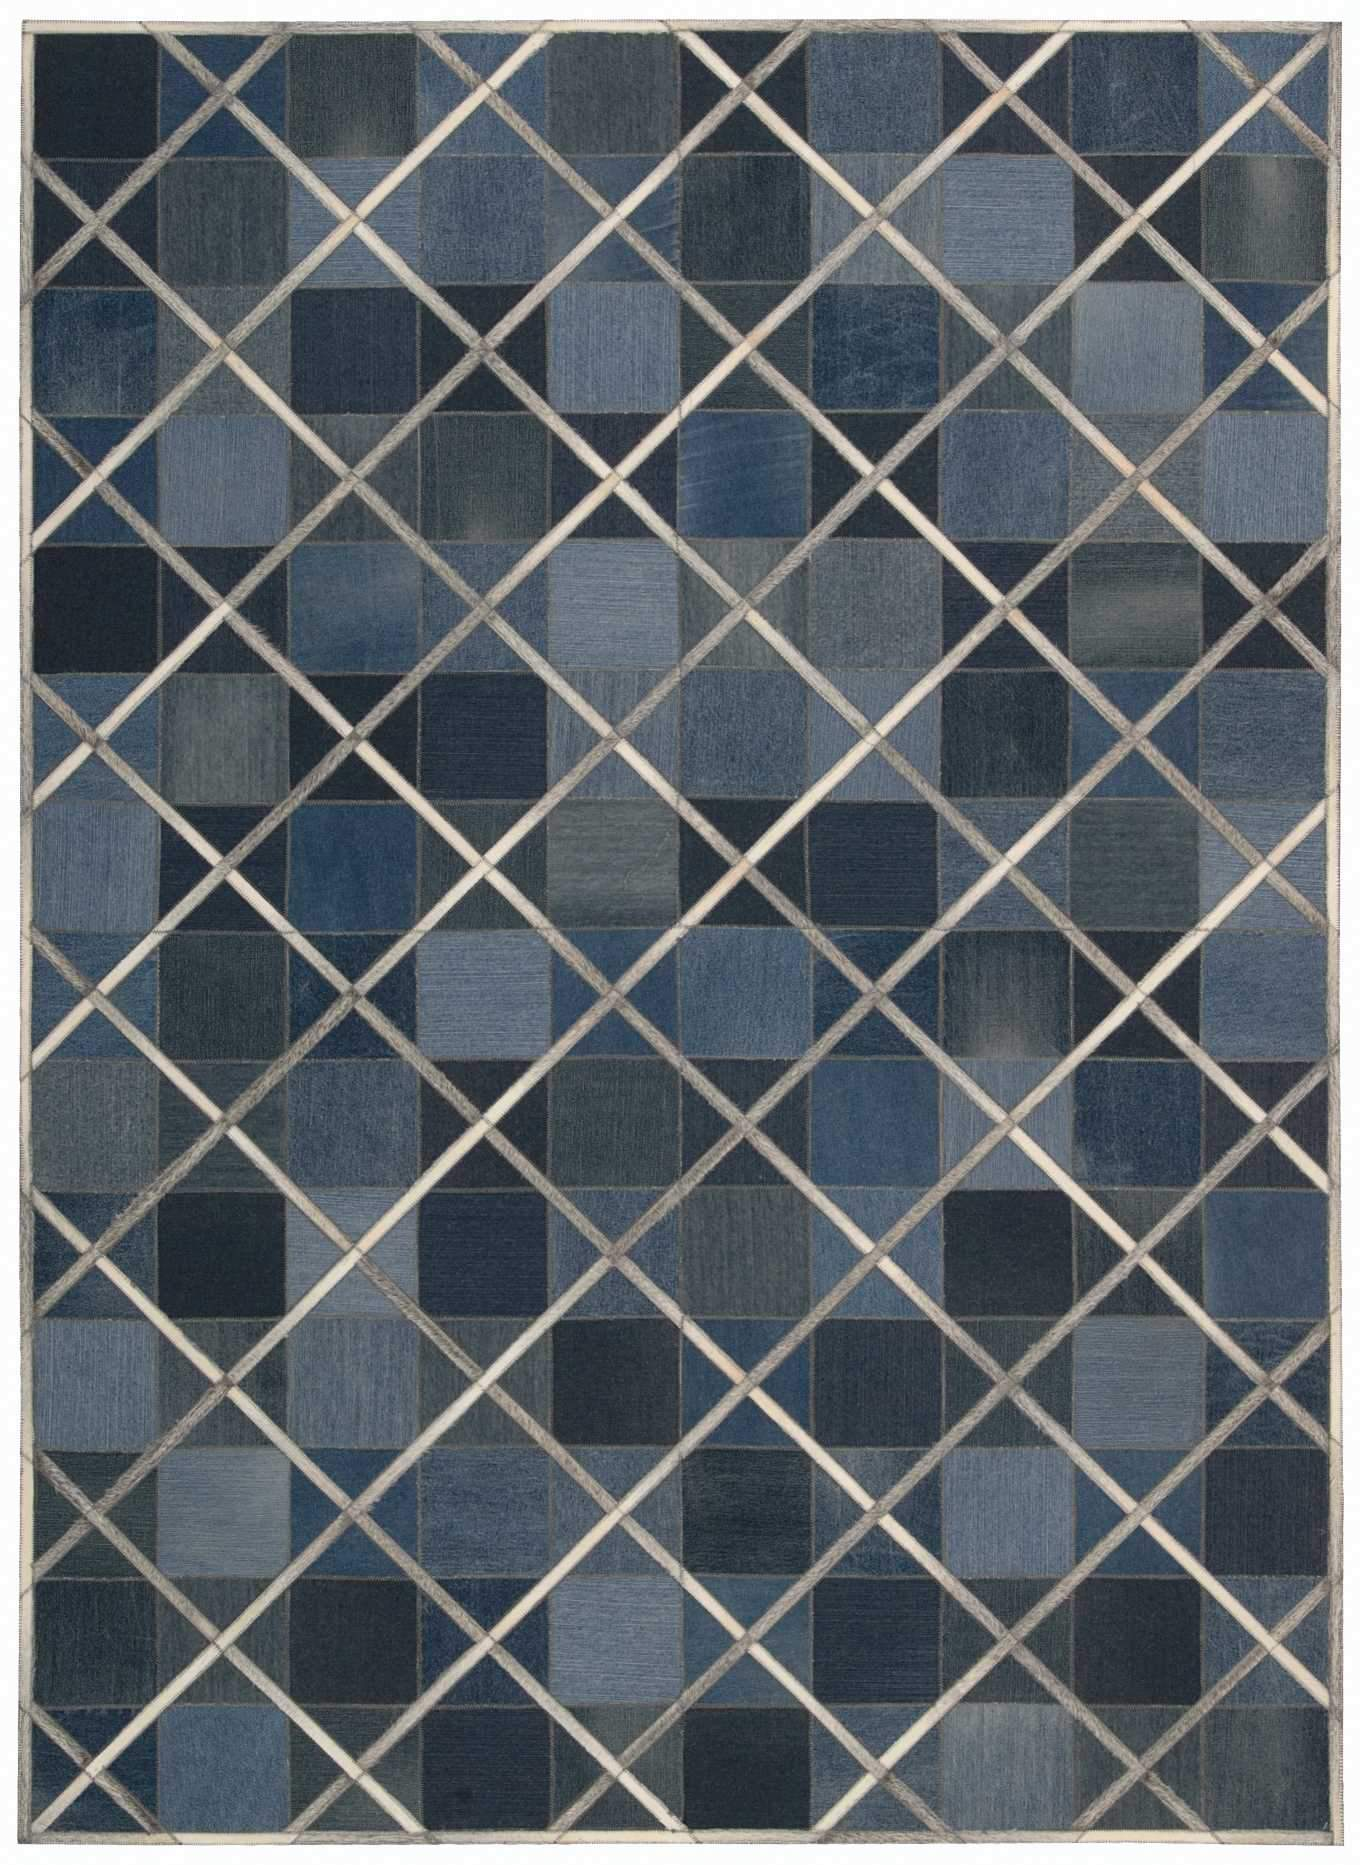 Cooper Indigo Rug - 2 Size Options Rugs Nourison 4' x 6' Accent